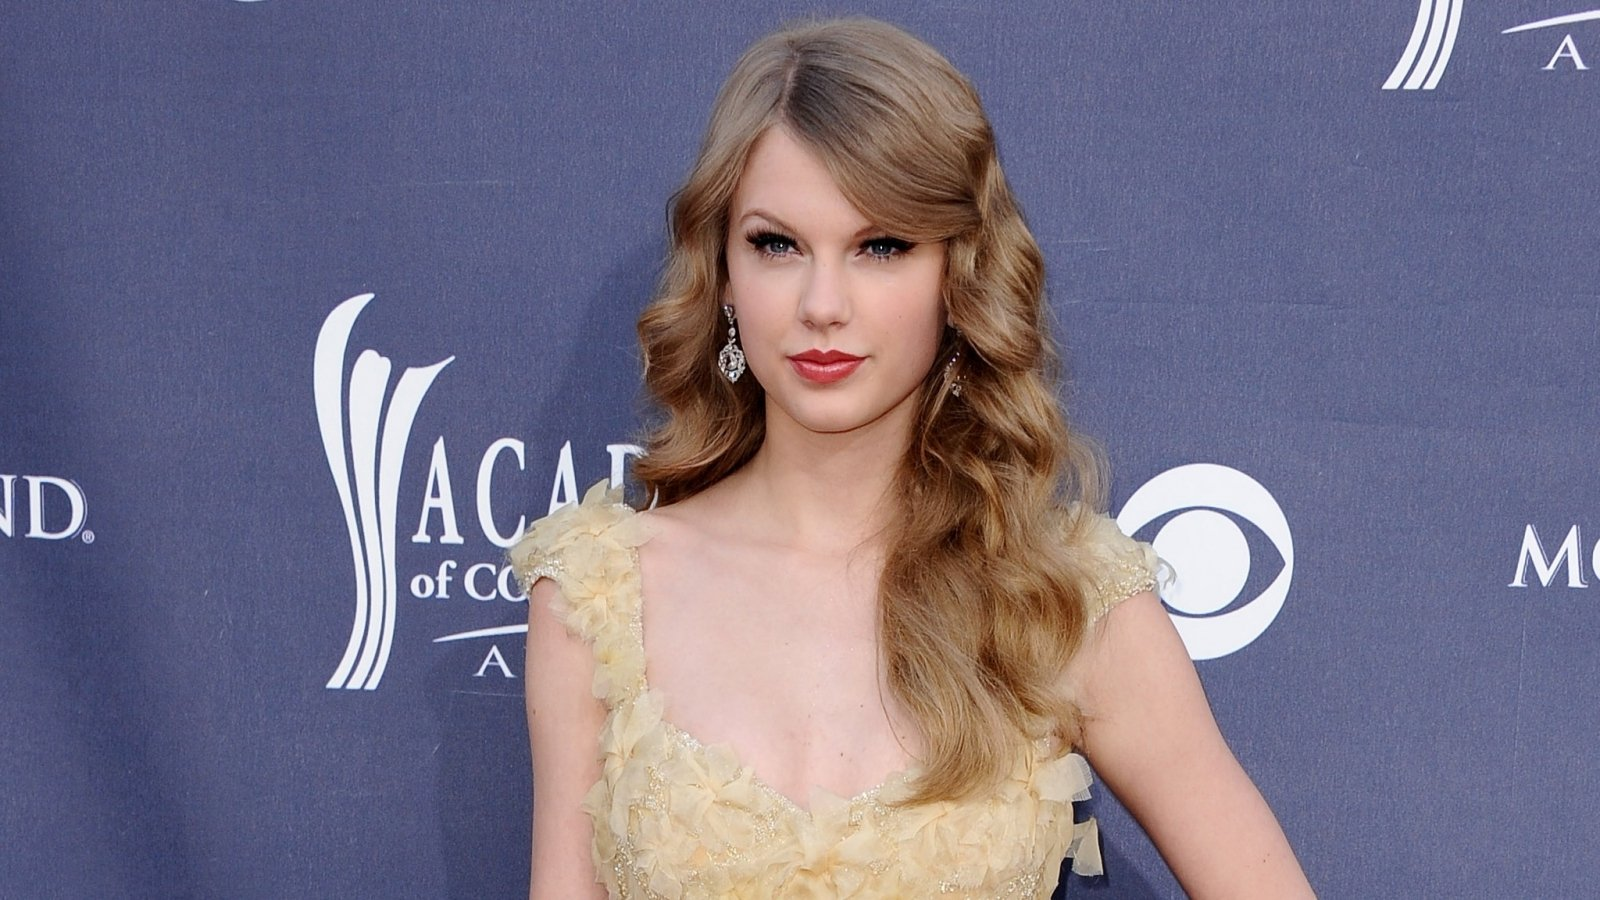 Taylor Swift Red Carpet Wallpaper And Background Image